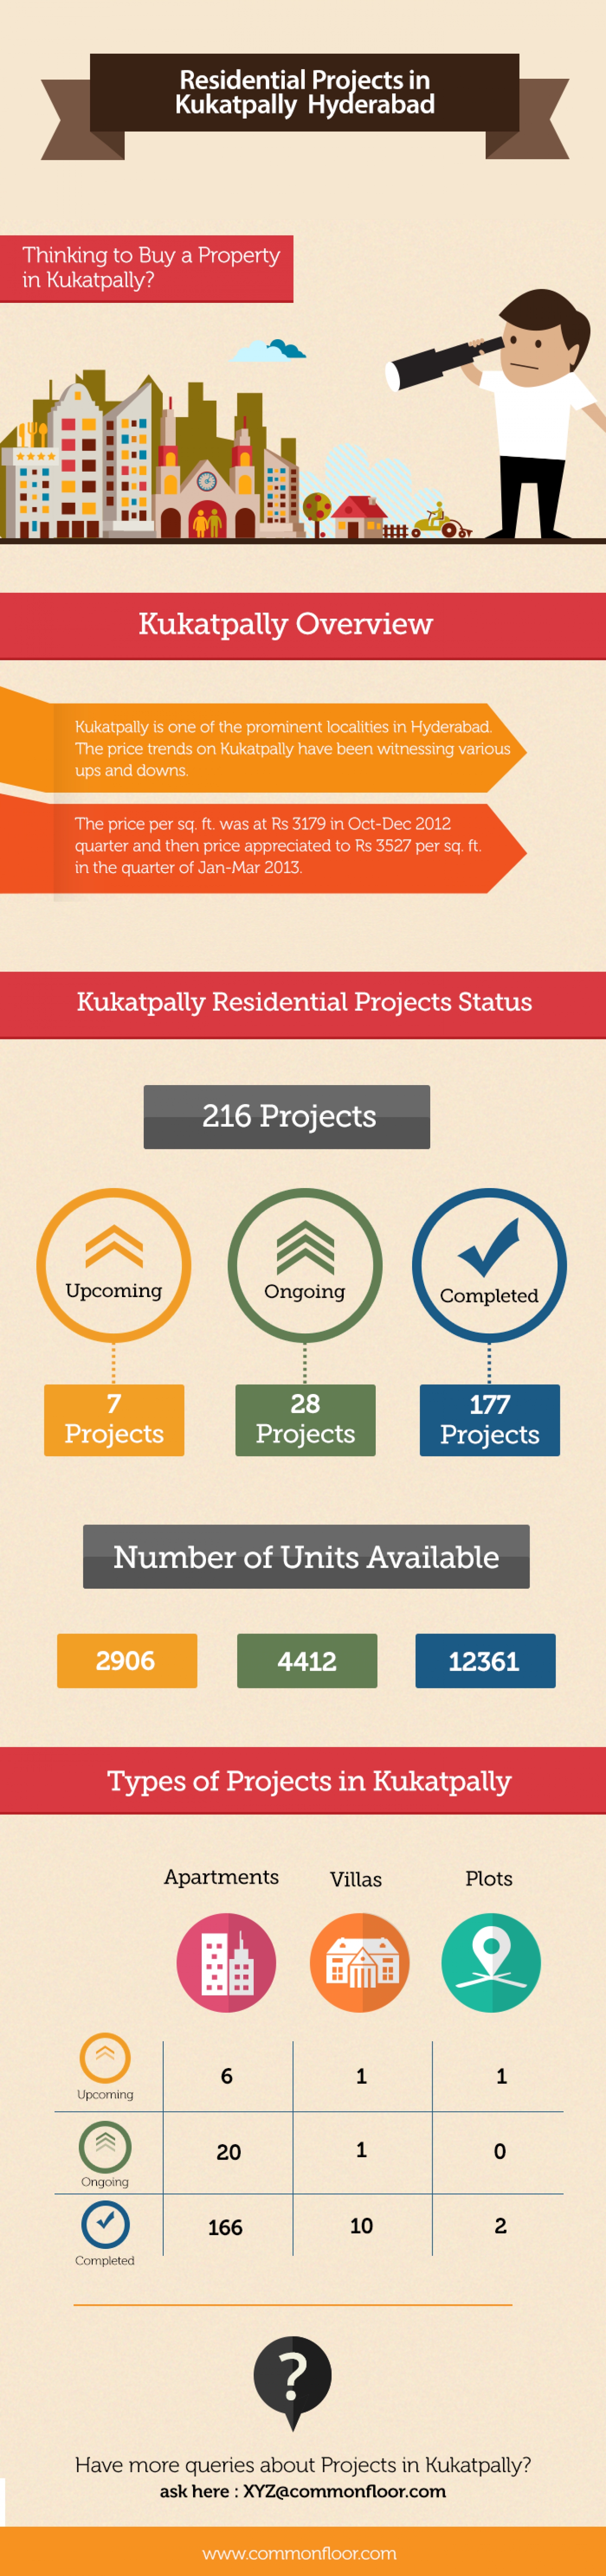 Residential Projects in Kukatpally Hyderabad Infographic